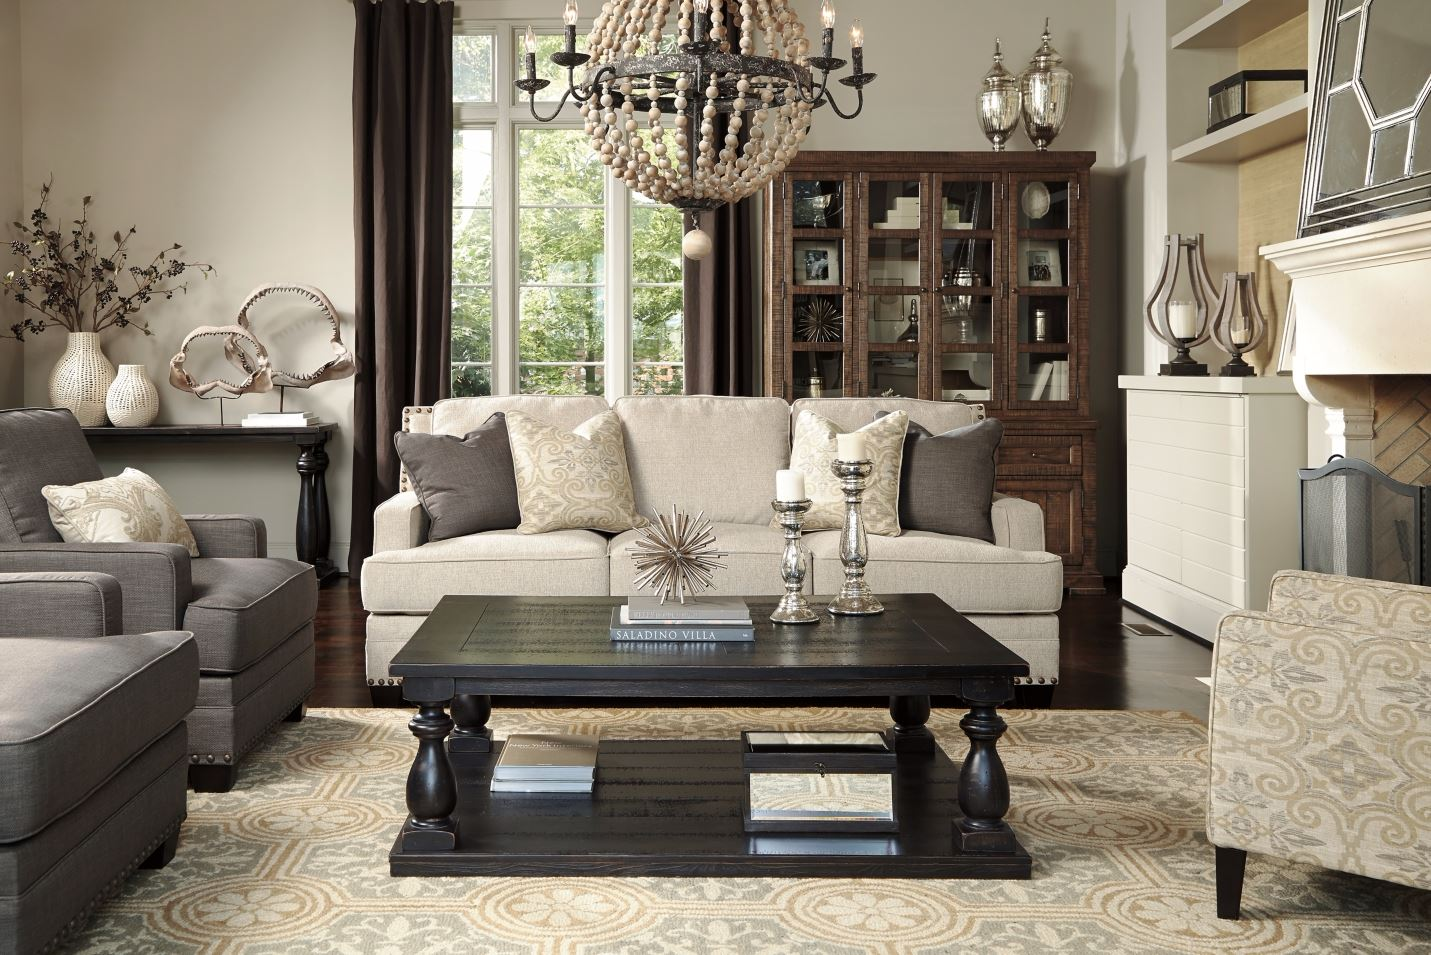 New Style Furniture the new urban farmhouse chic | ashley furniture homestore